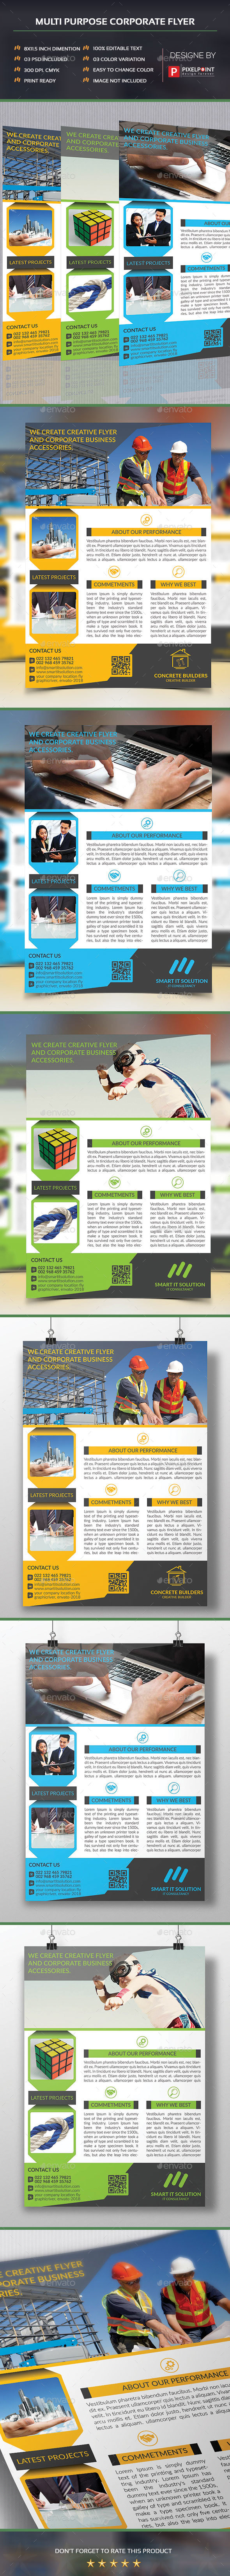 Multi Purpose Corporate Flyer - Corporate Flyers